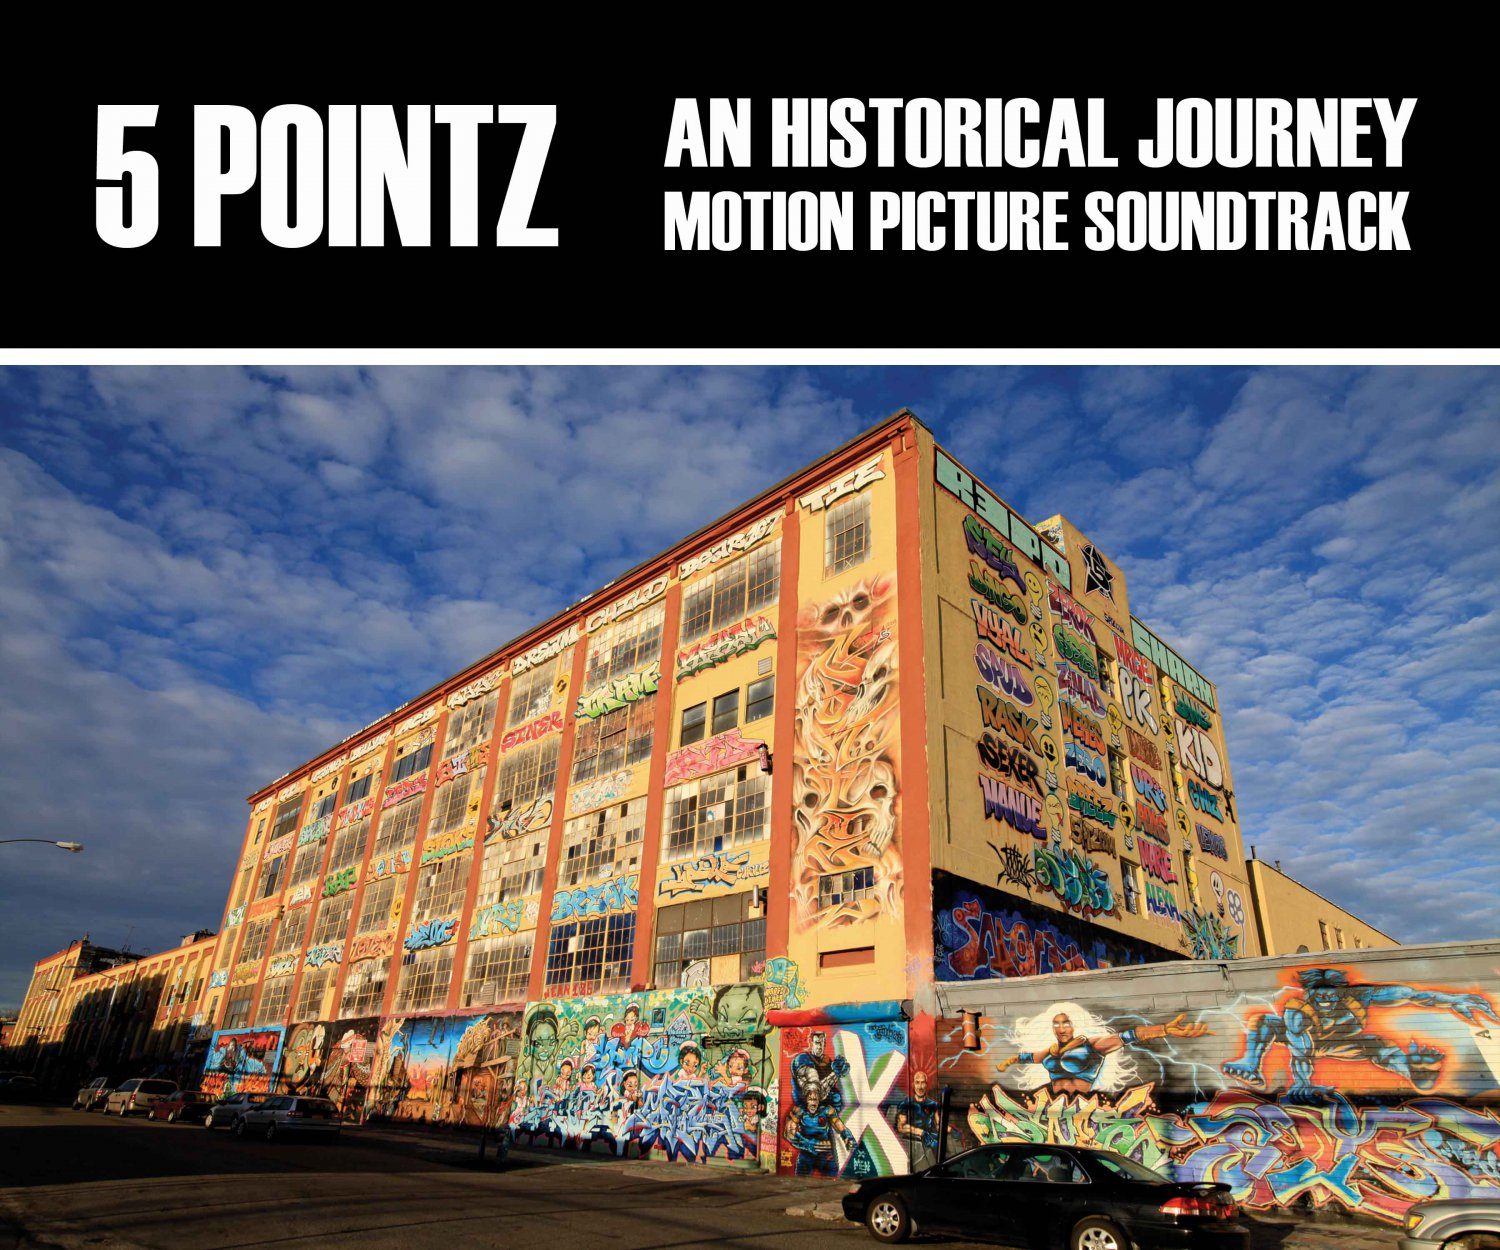 5 Pointz: An Historical Journey Soundtrack (CD, 2014) 360 Sound and Vision